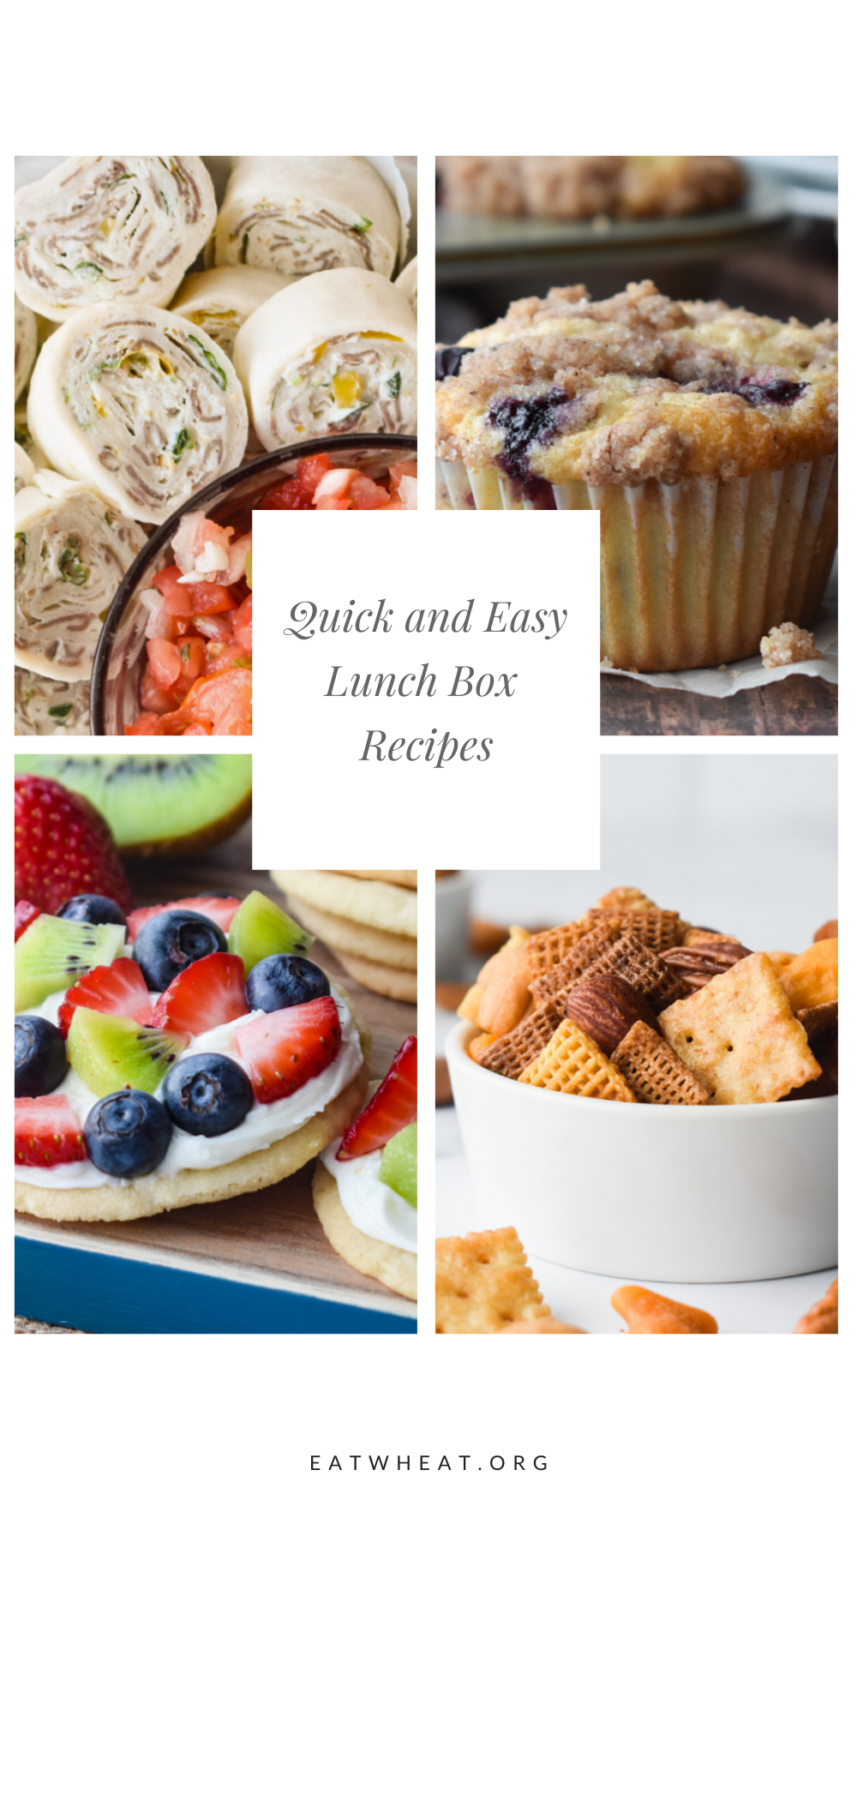 Looking to level up your kiddos lunch box? We've got easy lunch box recipes just for you!